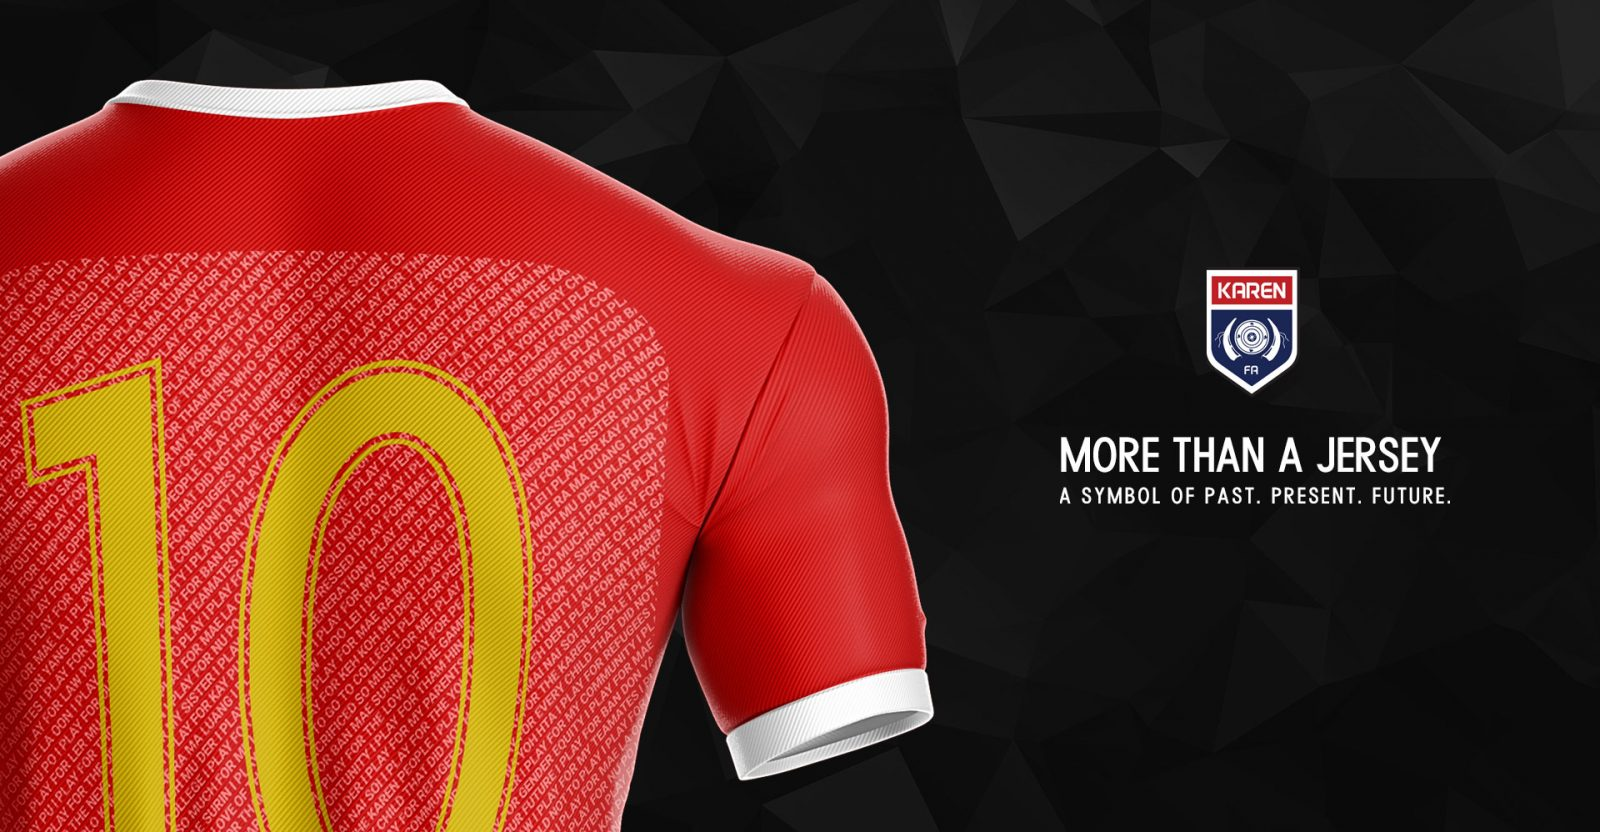 karen-national-team-full-image-header-desktop-kfa-national-team-jersey